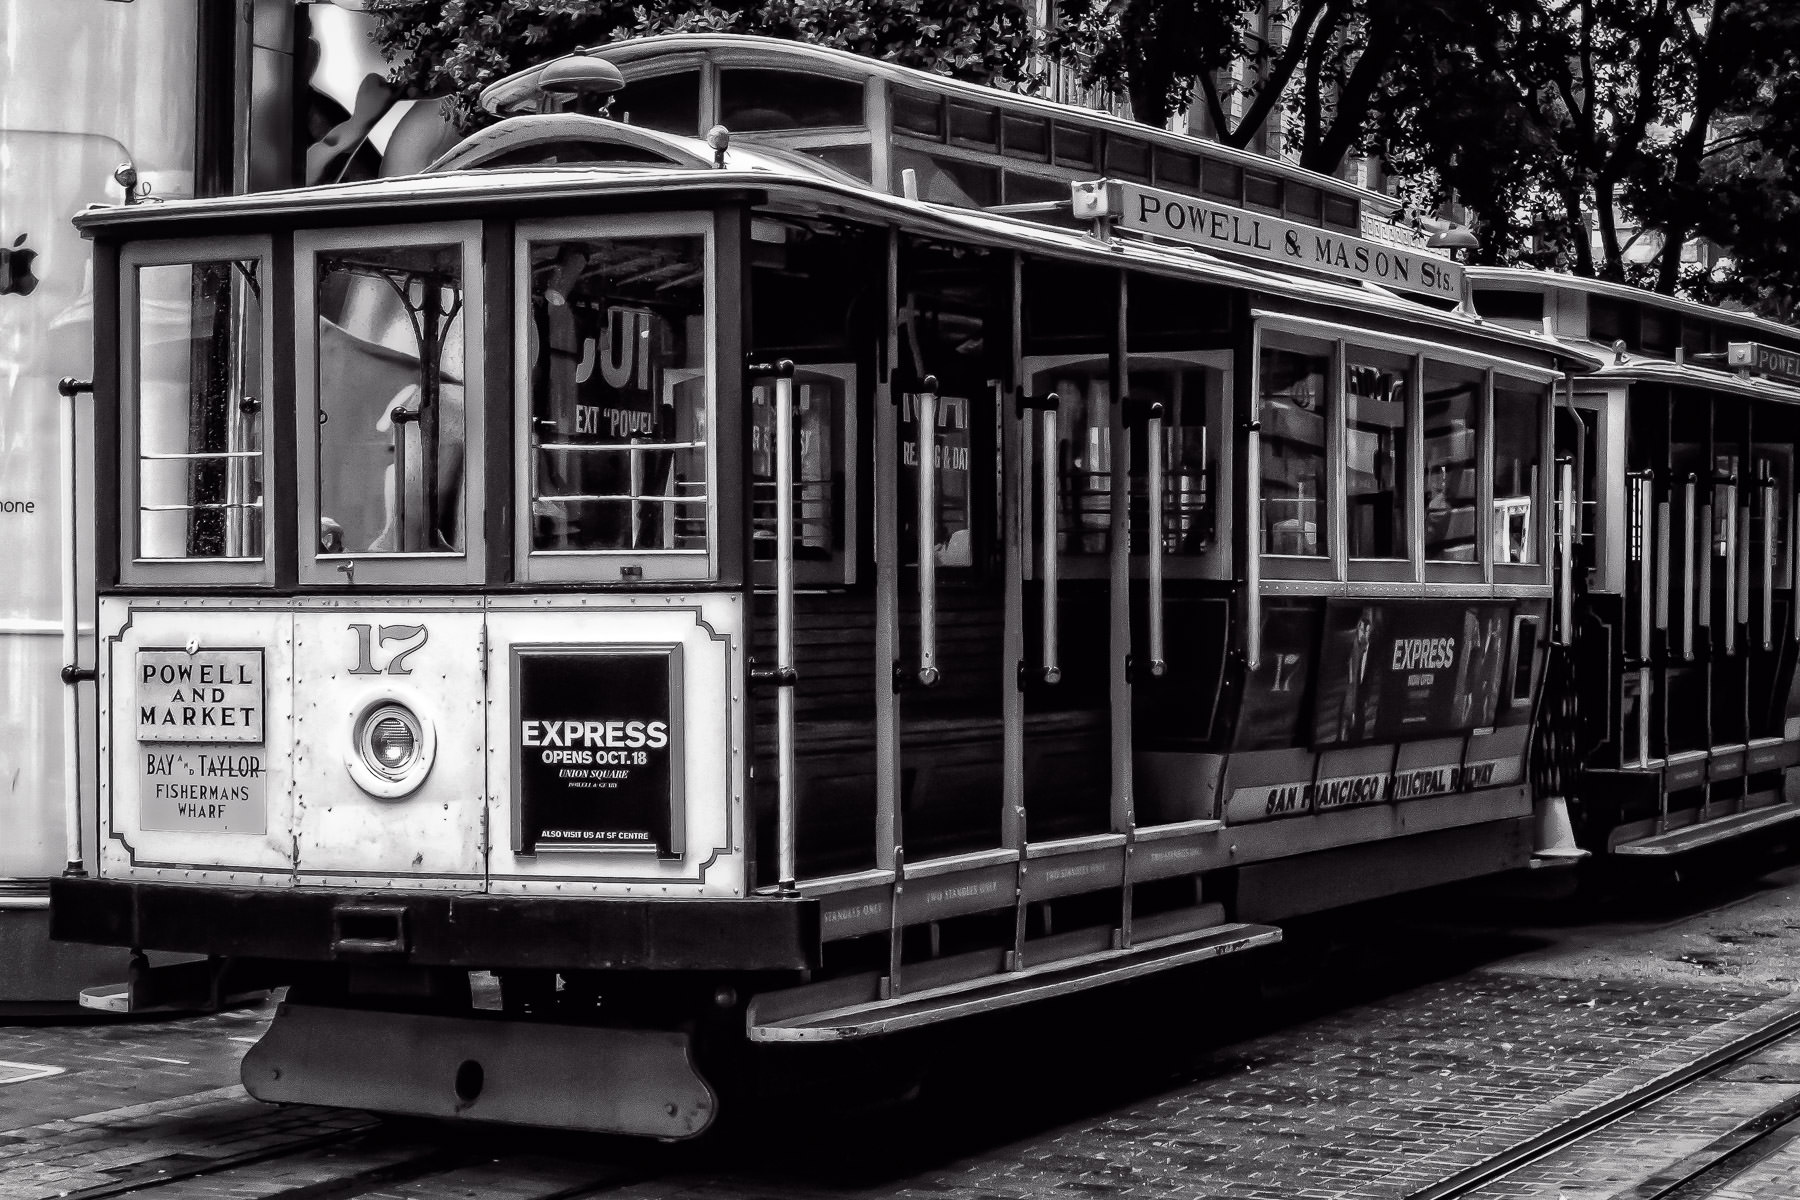 Vintage cable cars on San Francisco's Powell & Mason cable car line.